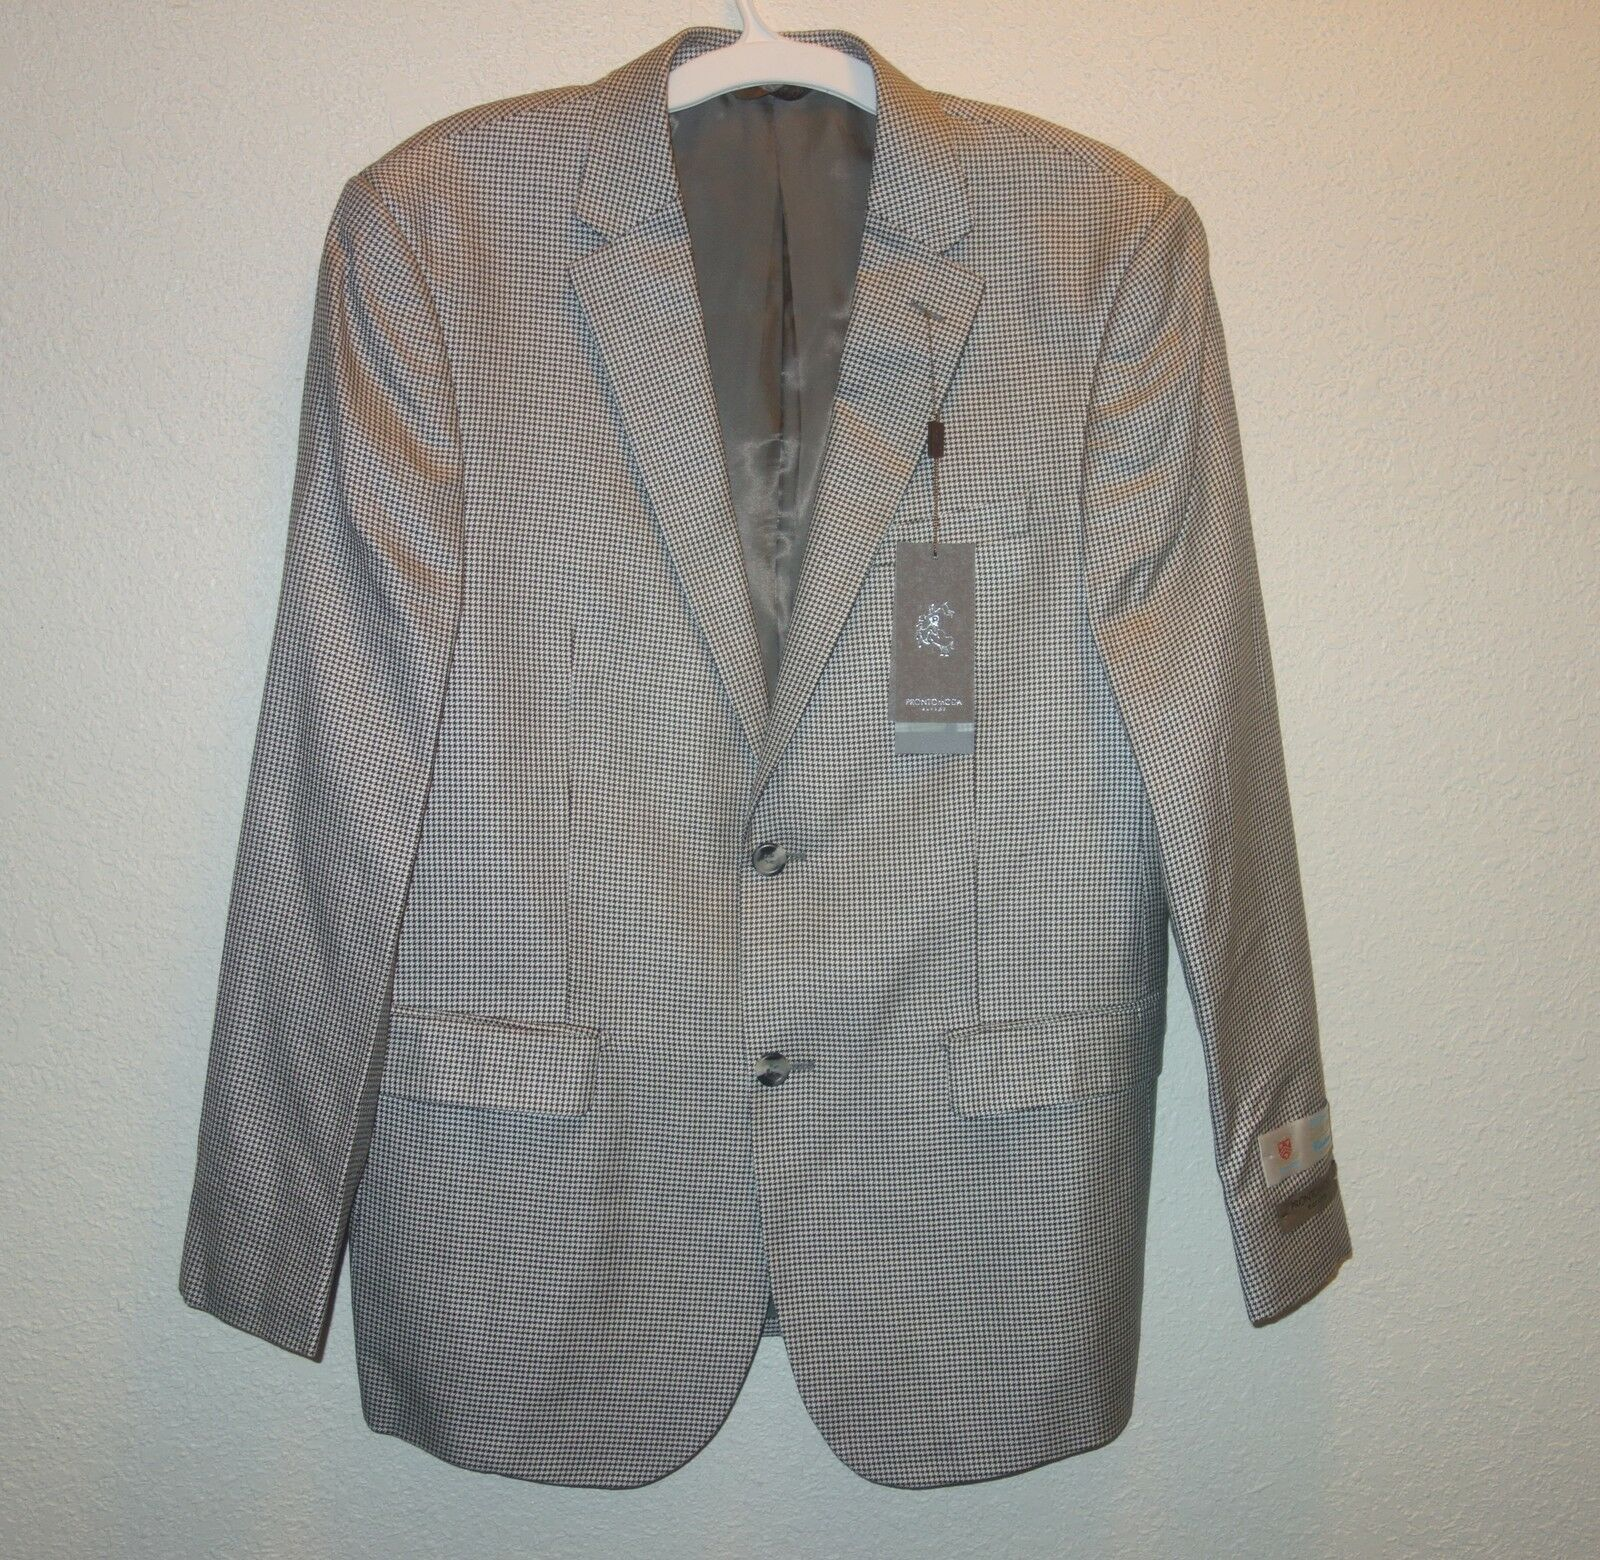 Pronto Moda europa  men's SPORTS BLAZER SZ 40R SILK WOOL NEW